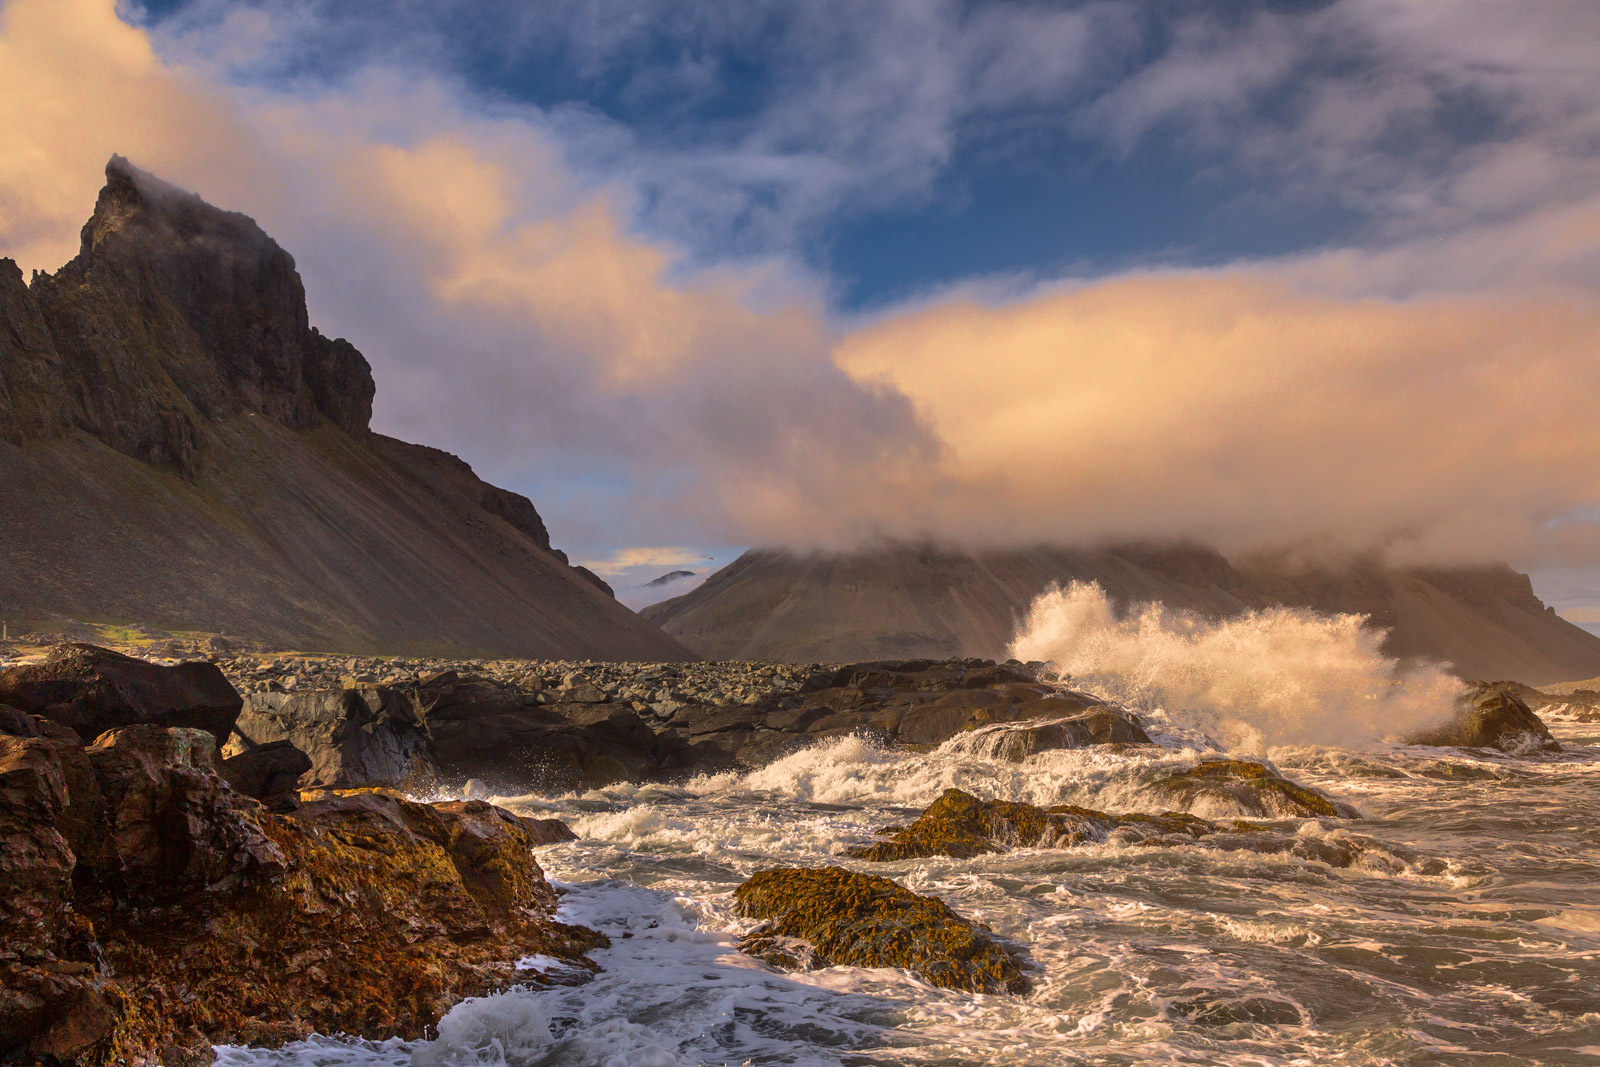 A Limited Edition, Fine Art photograph of waves exploding on the rocky coast of Iceland with mountains in the background.  Available...